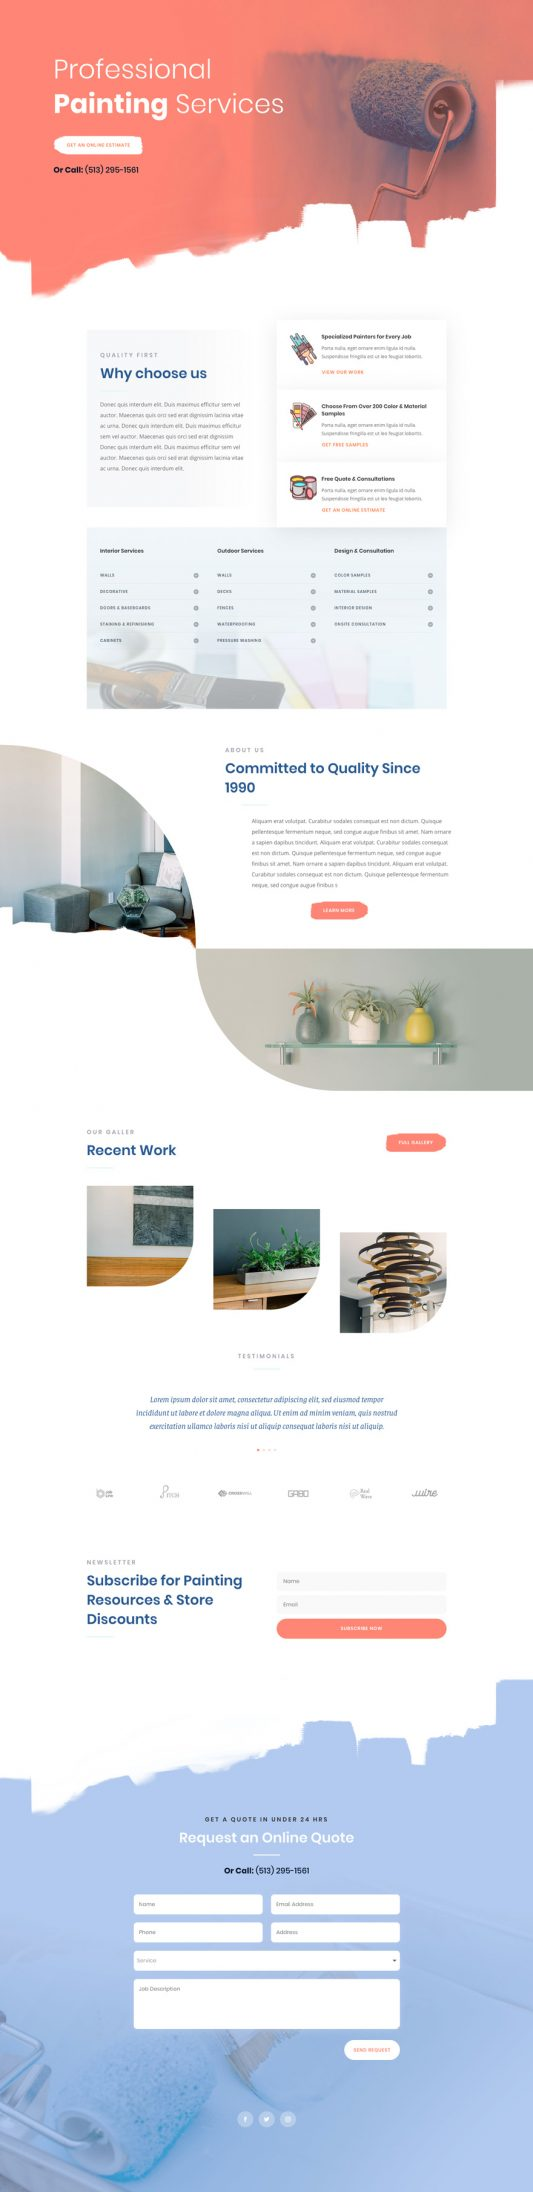 Painting Service Web Design 4